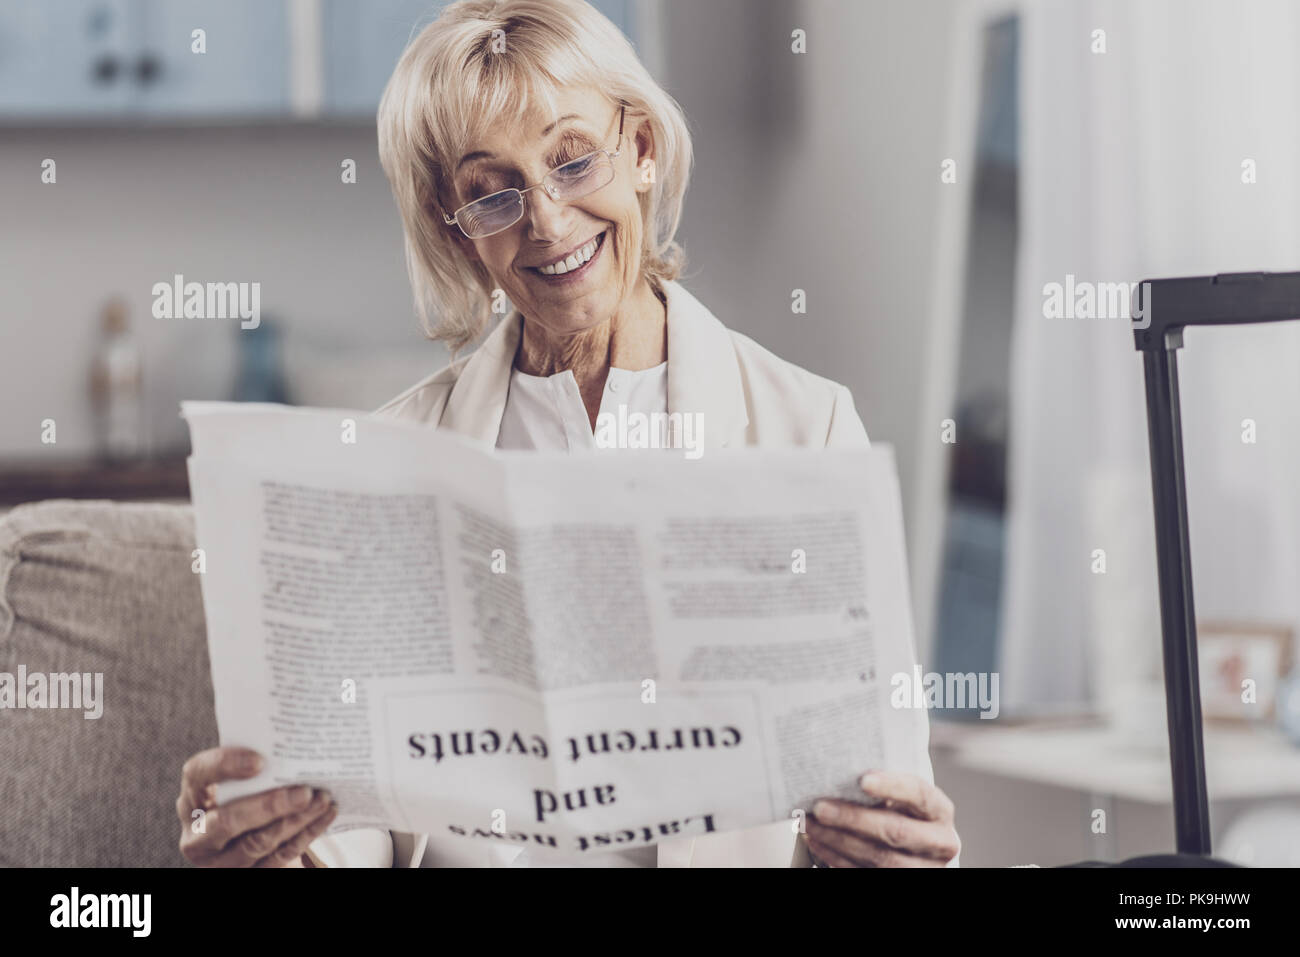 Smiling elderly woman reading info about current events - Stock Image